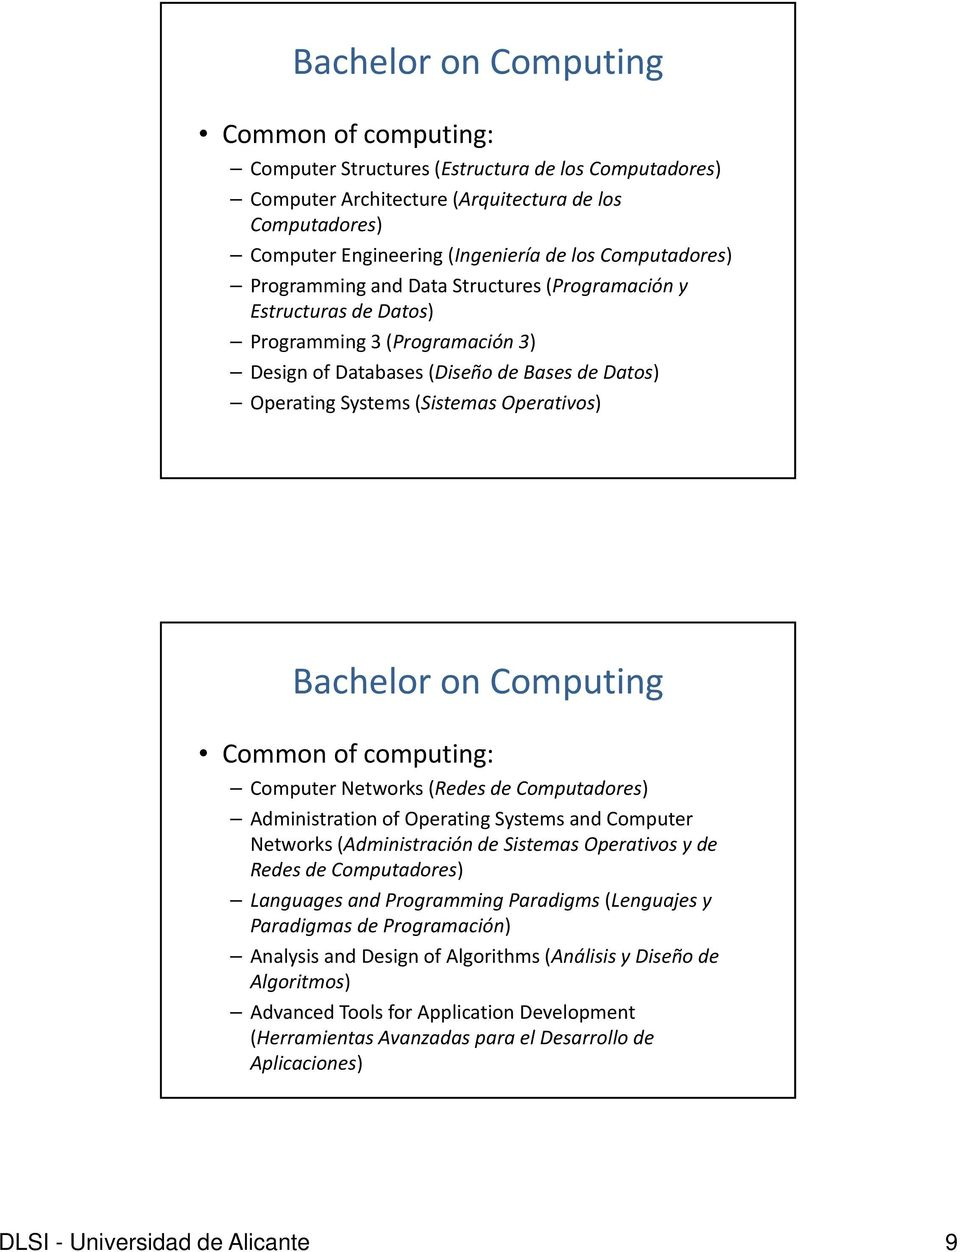 Operativos) Bachelor on Computing Common of computing: k ( d d d ) Computer Networks (Redes de Computadores) Administration of Operating Systems and Computer Networks (Administración de Sistemas